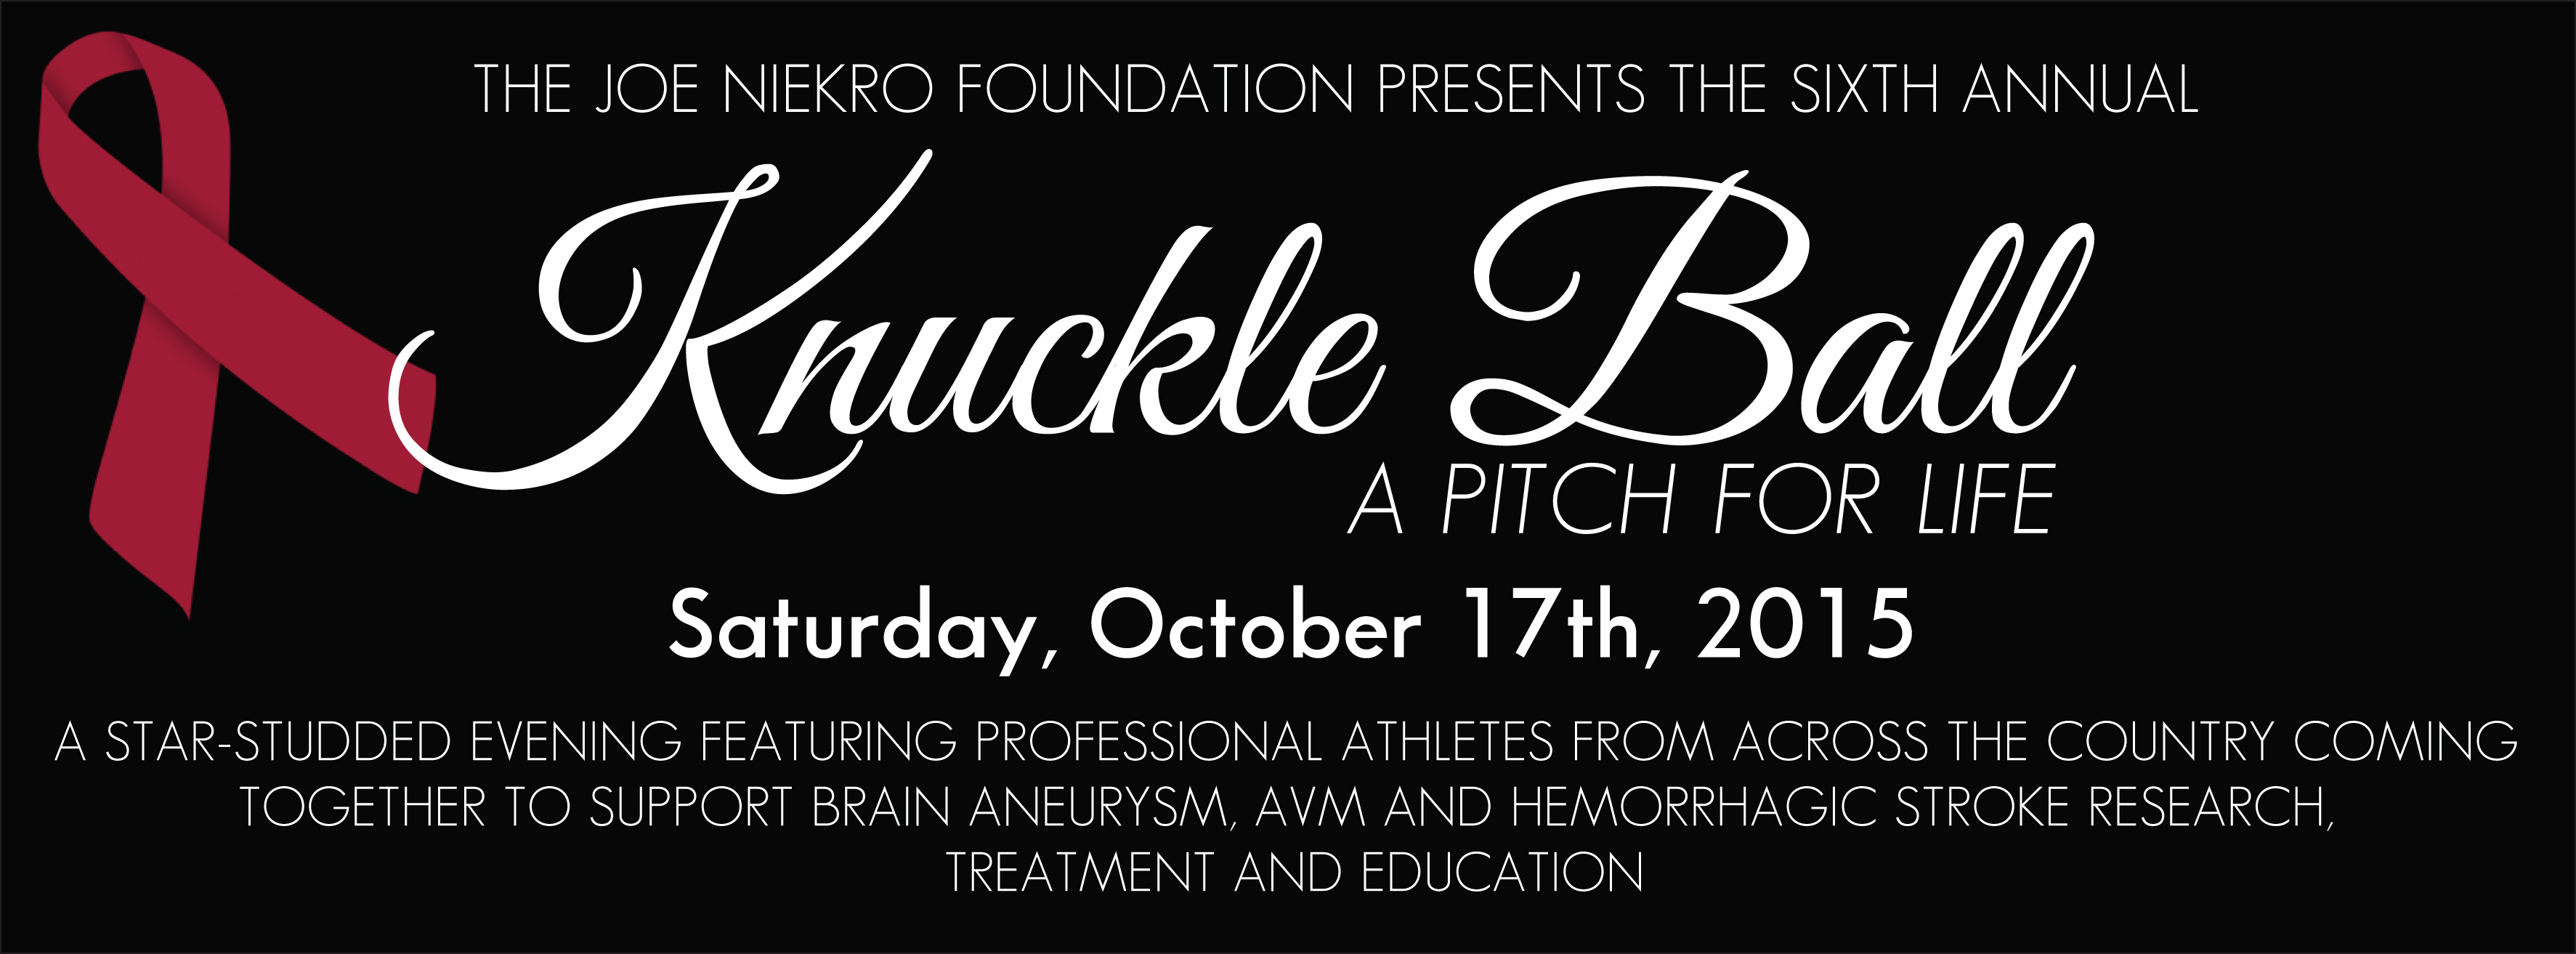 https://www.joeniekrofoundation.com/aneurysms/get-ready-to-pitch-another-great-evening-2/